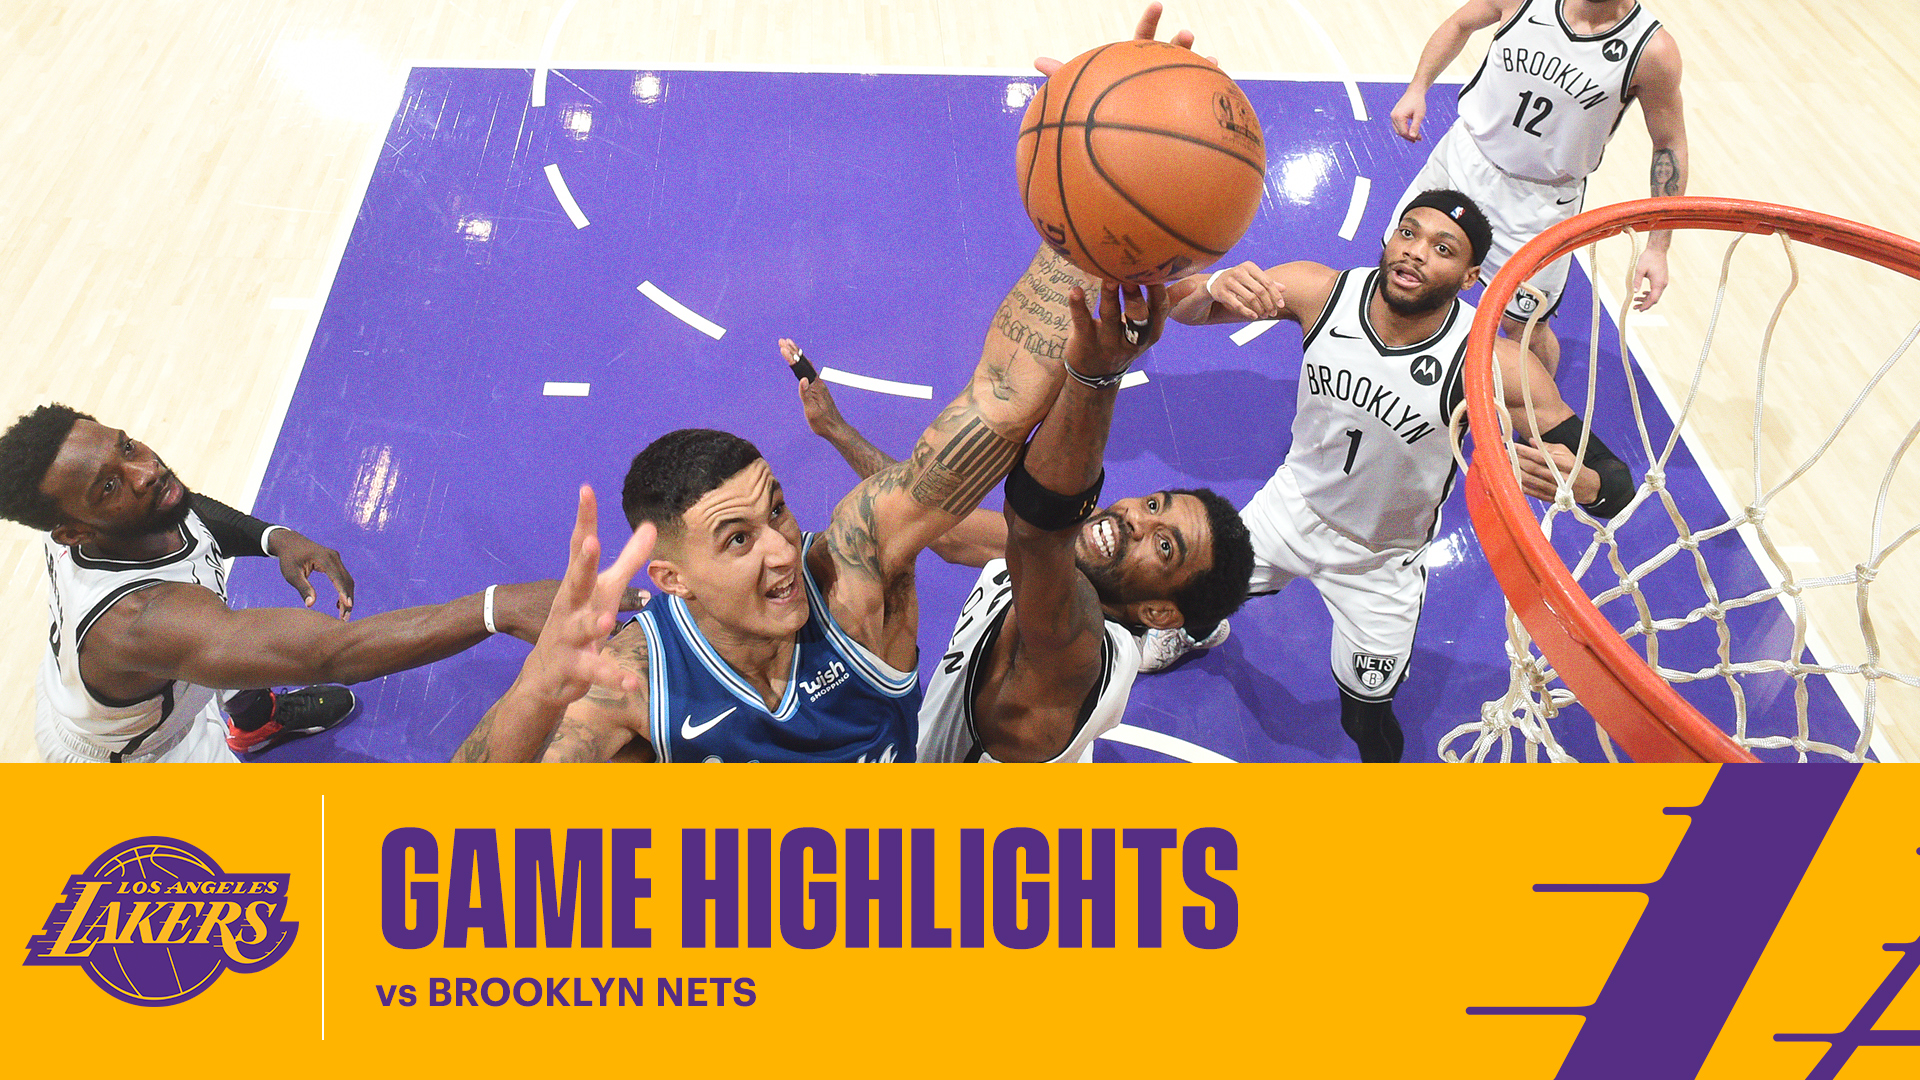 HIGHLIGHTS | Los Angeles Lakers vs Brooklyn Nets